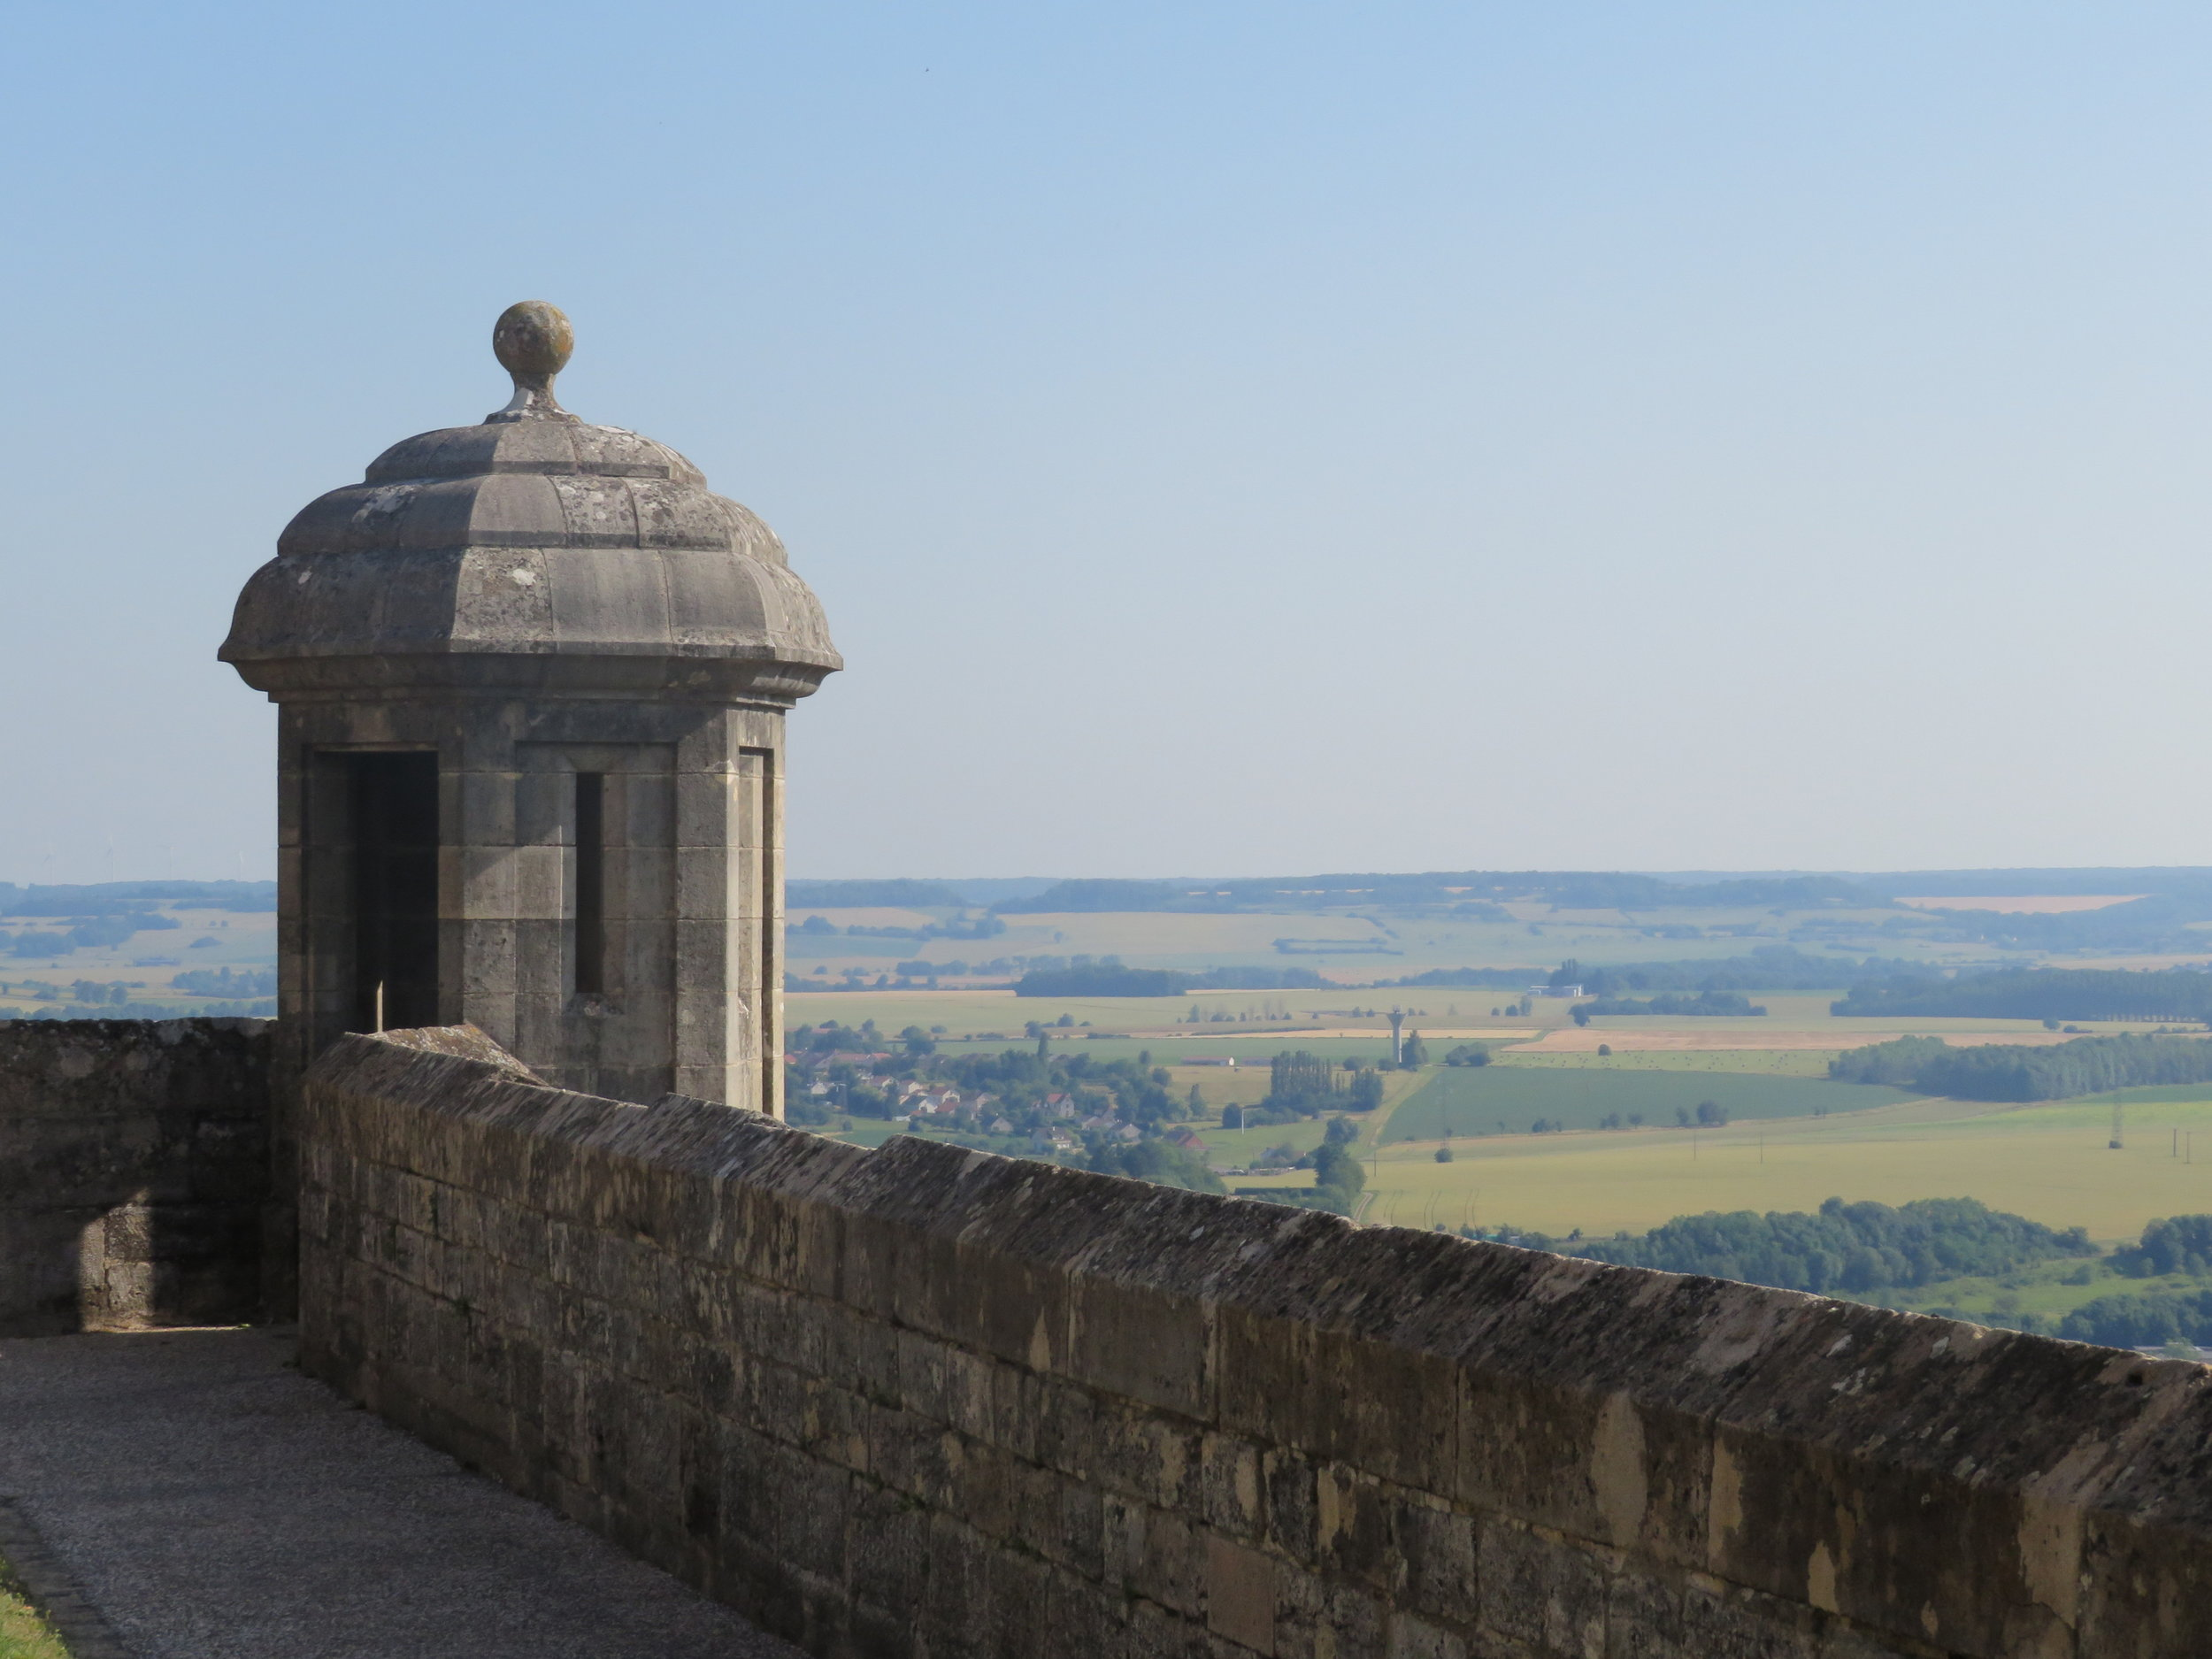 Walking the ramparts of Langres … Piquant Tower and a splendid view of the Marne Valley